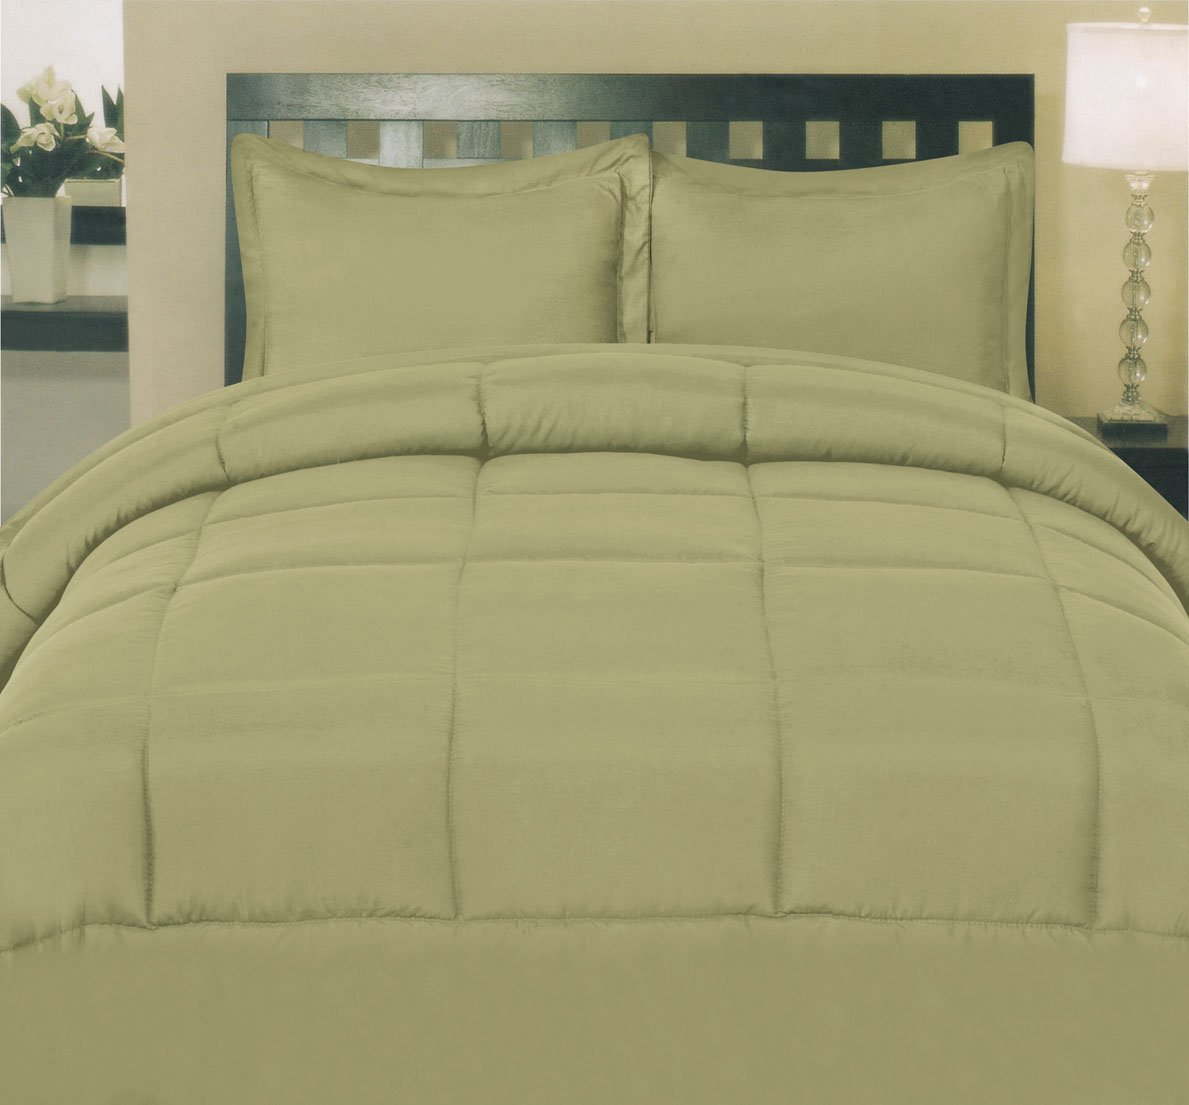 Sweet Home Collection White Goose Down Alternative Comforter, Full, Sage